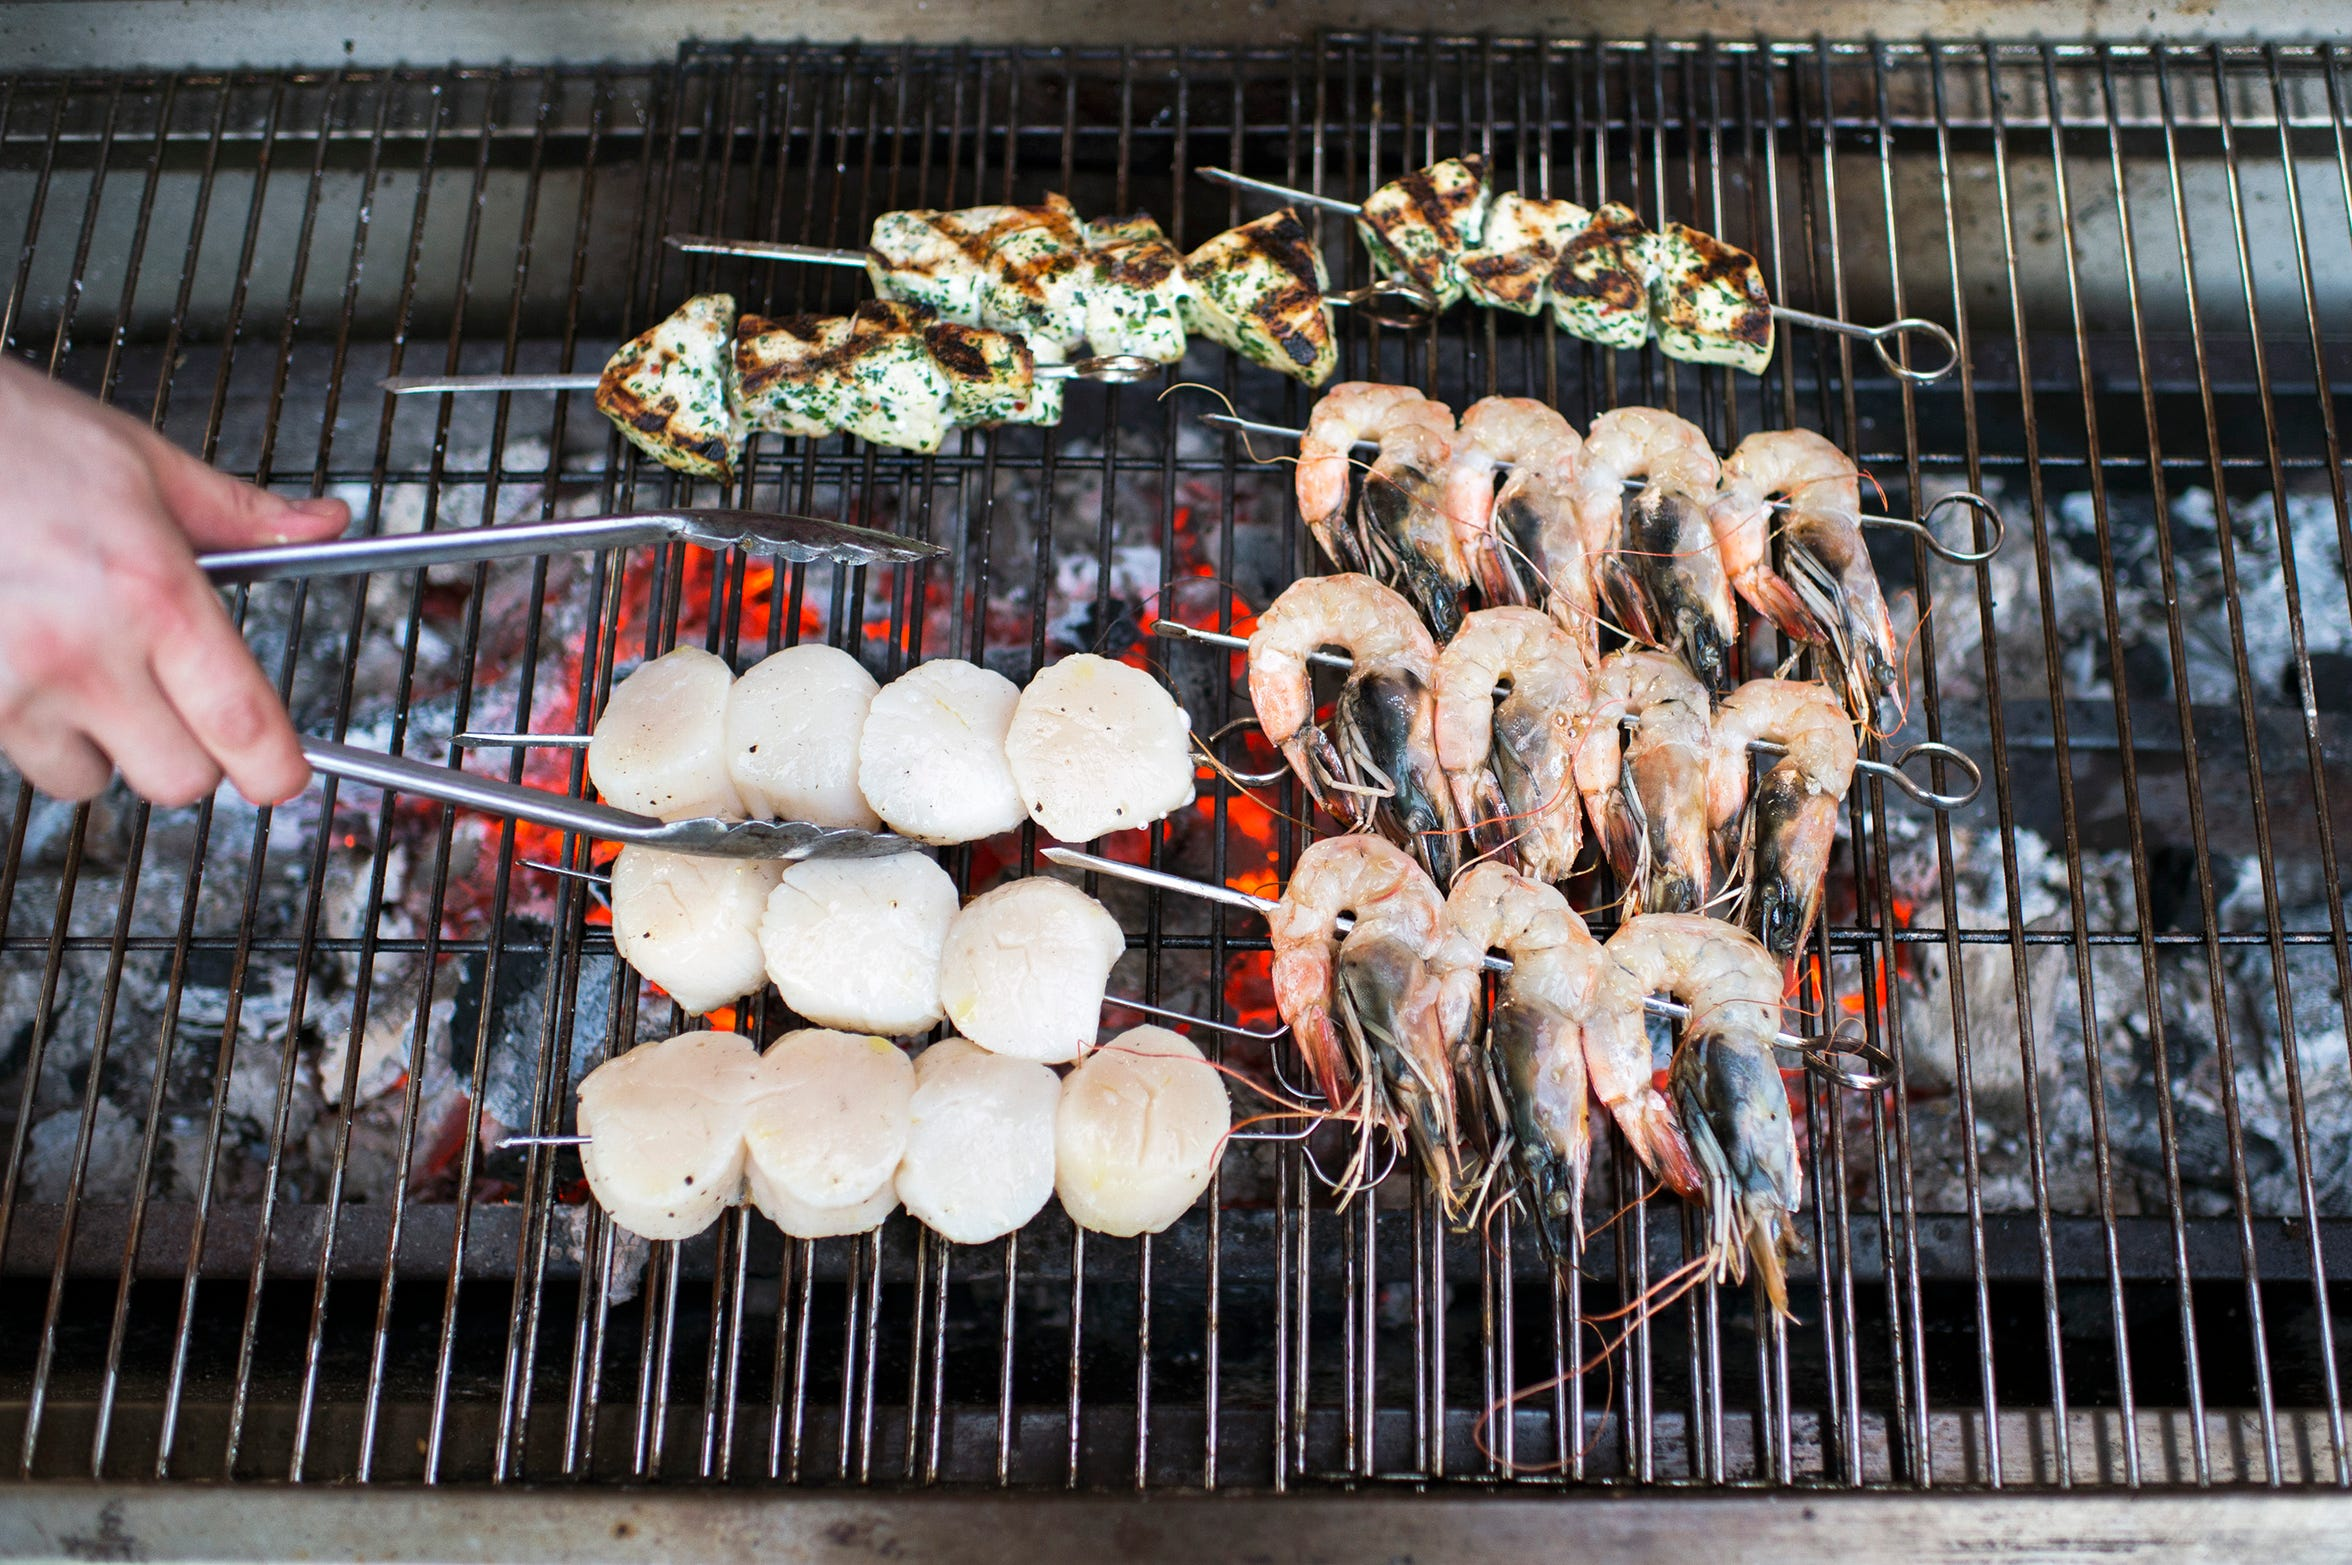 Chef Joey Baldino grills scallops, shrimp and fish skewers for a special Sicilian-style barbecue at Zeppoli in Collingswood.